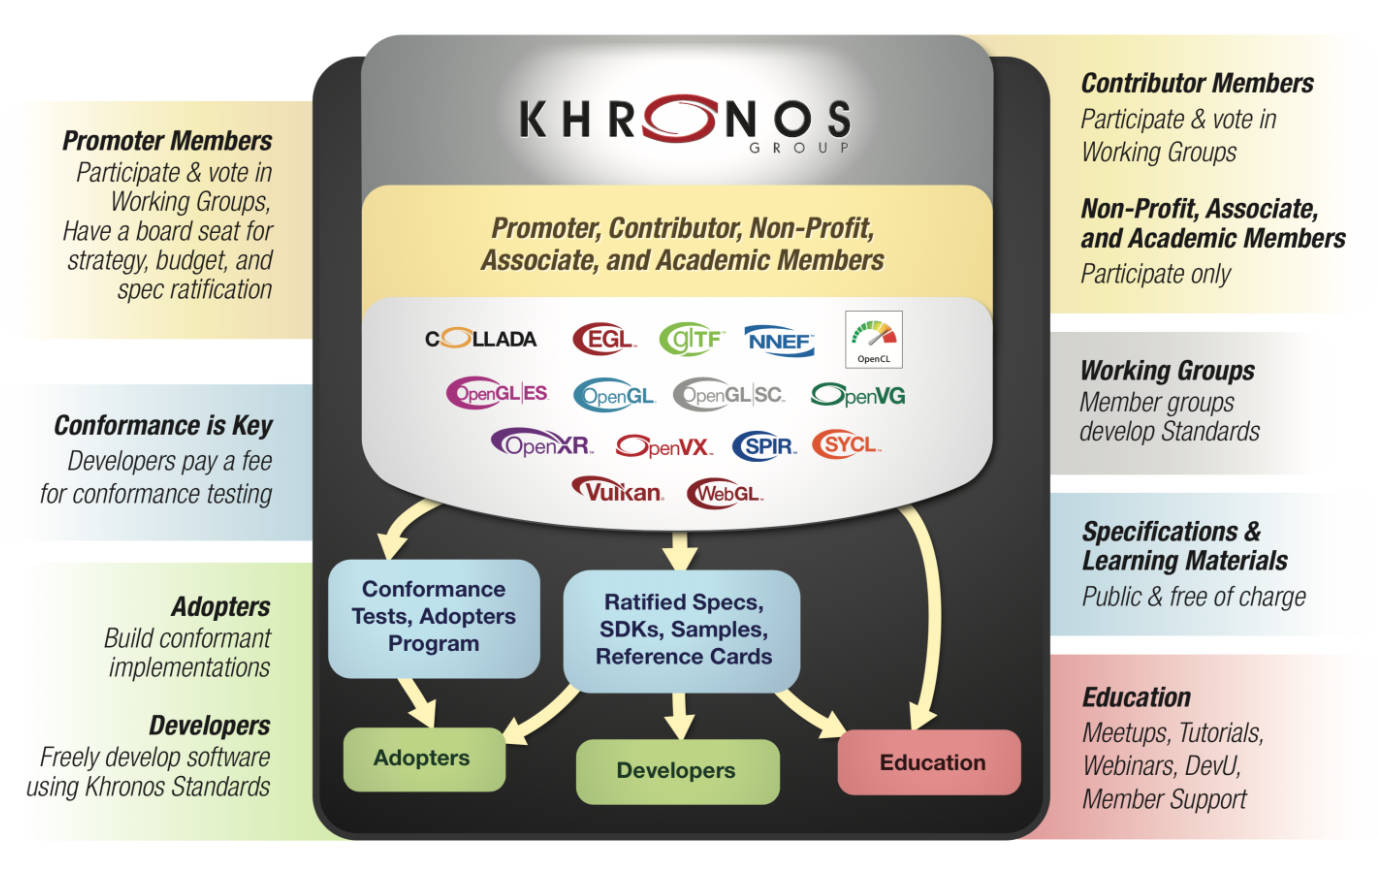 How the Khronos Group Works